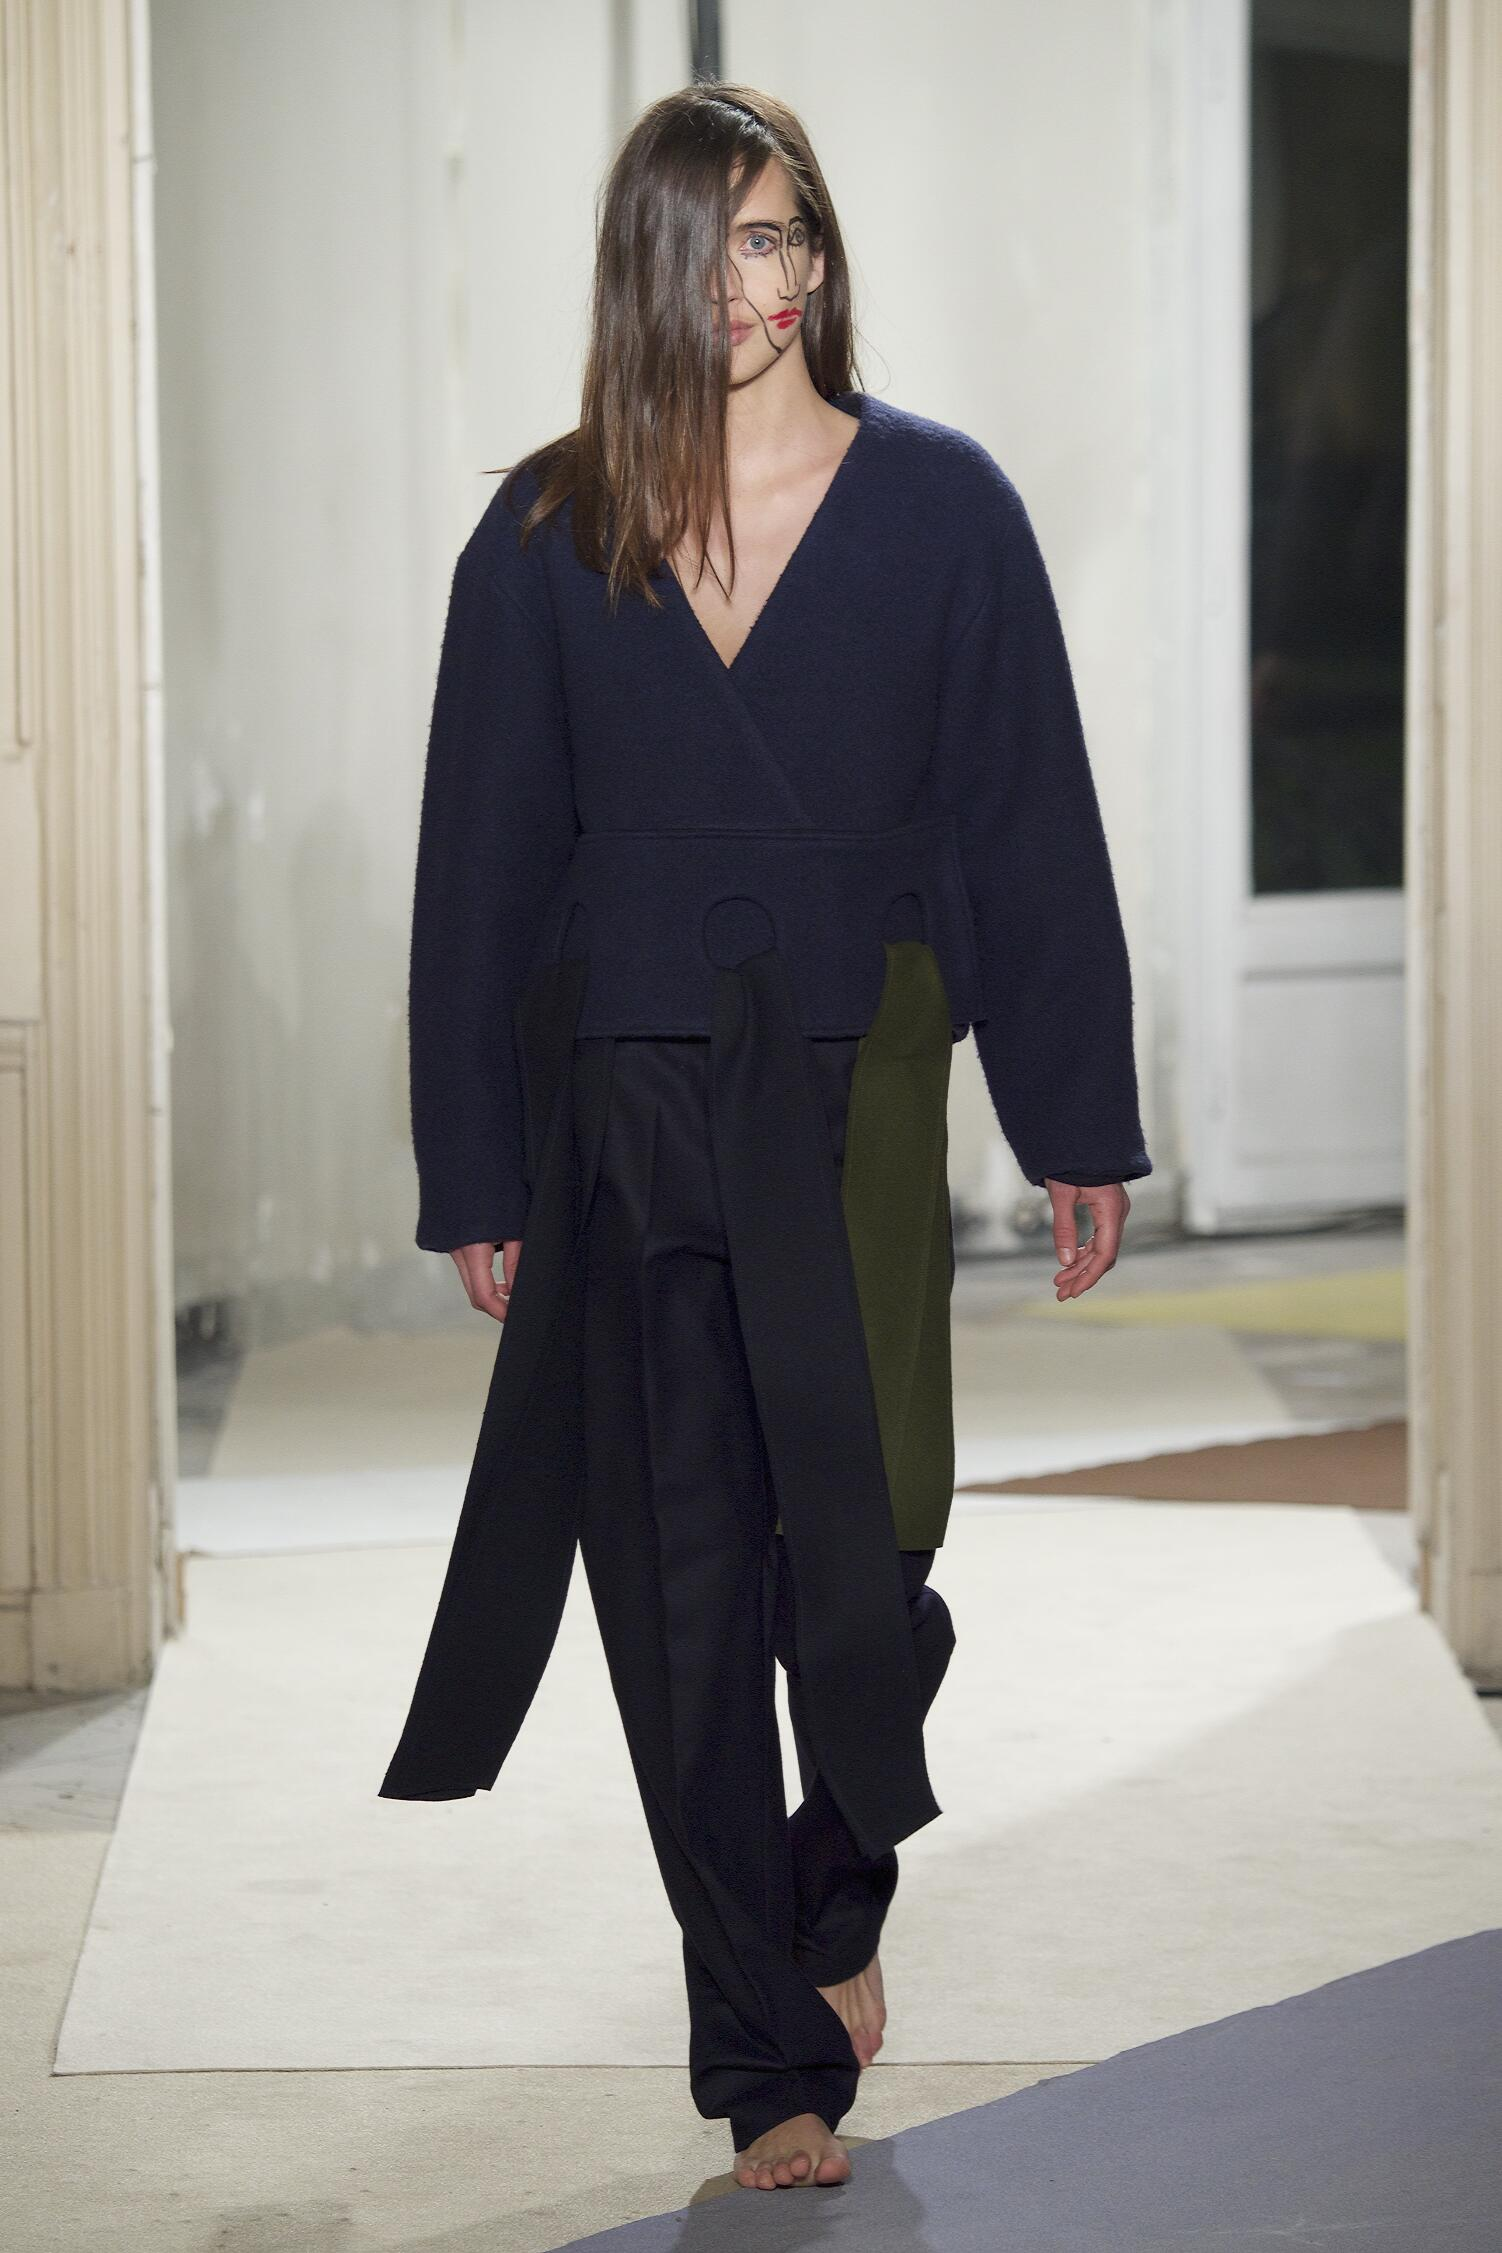 Catwalk Jacquemus Collection Fashion Show Winter 2015